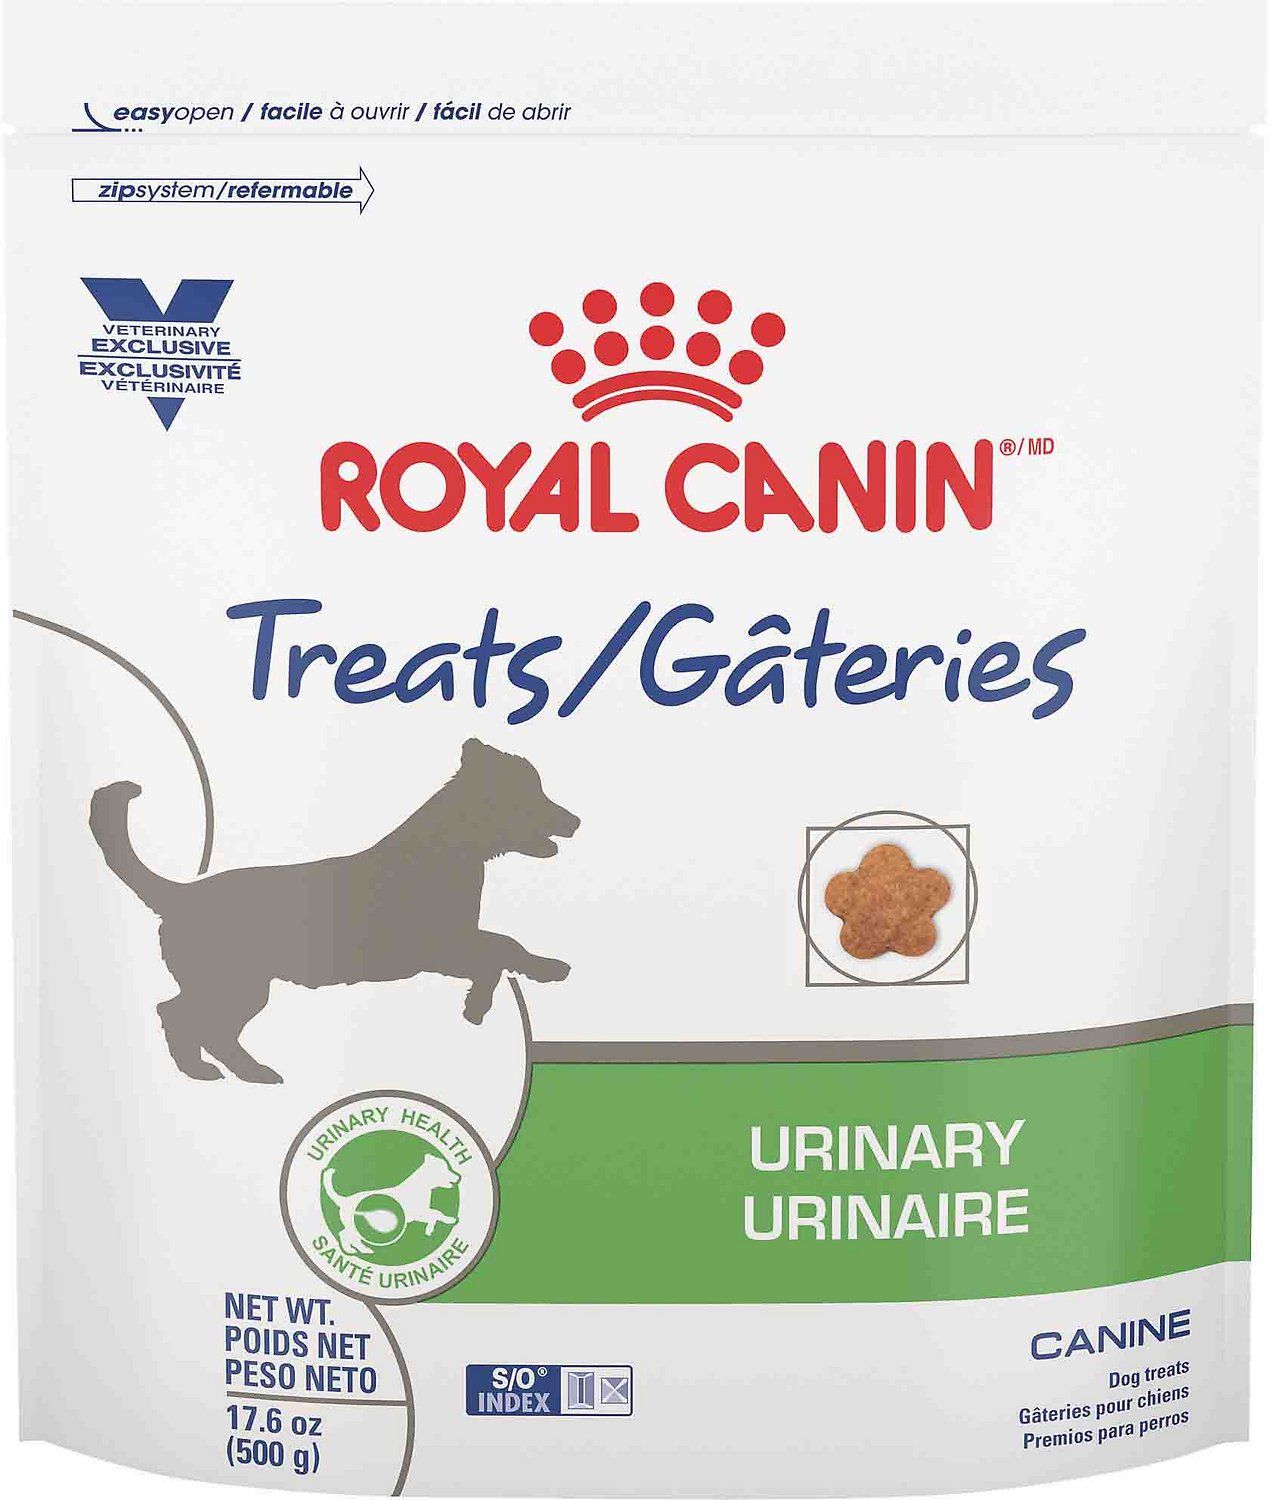 royal canin veterinary diet urinary canine dog treats 1 1. Black Bedroom Furniture Sets. Home Design Ideas